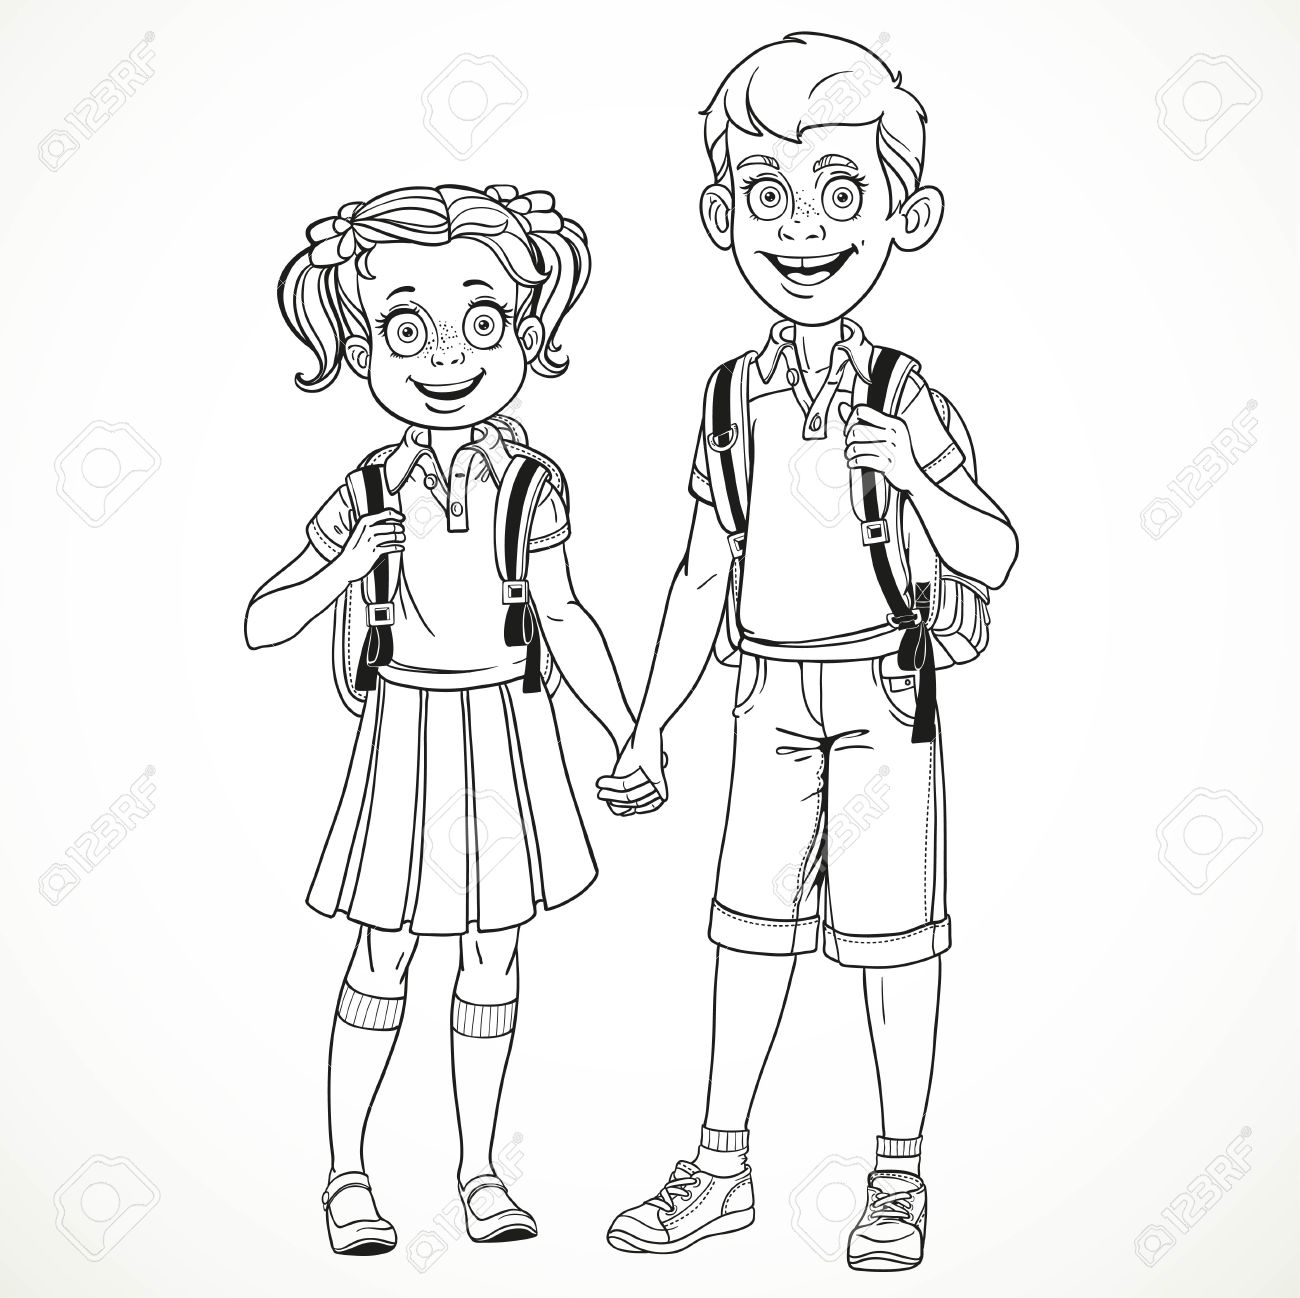 1300x1298 Girl And Boy Drawing How To Draw Kids Girl And Boy Learning